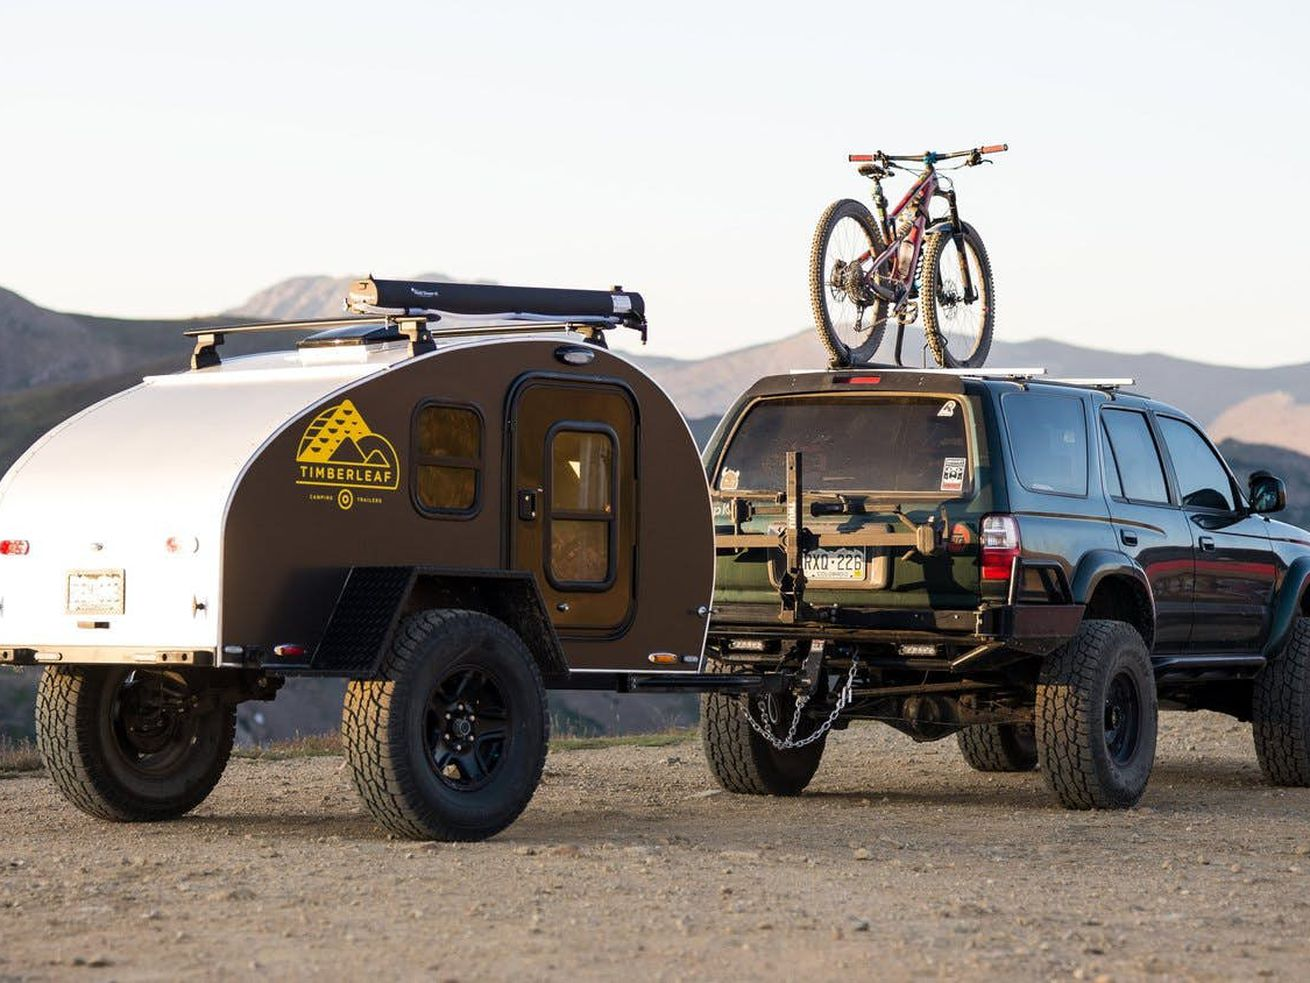 The Pika teardrop trailer from Timberleaf Trailers is a tiny take on a classic shape.